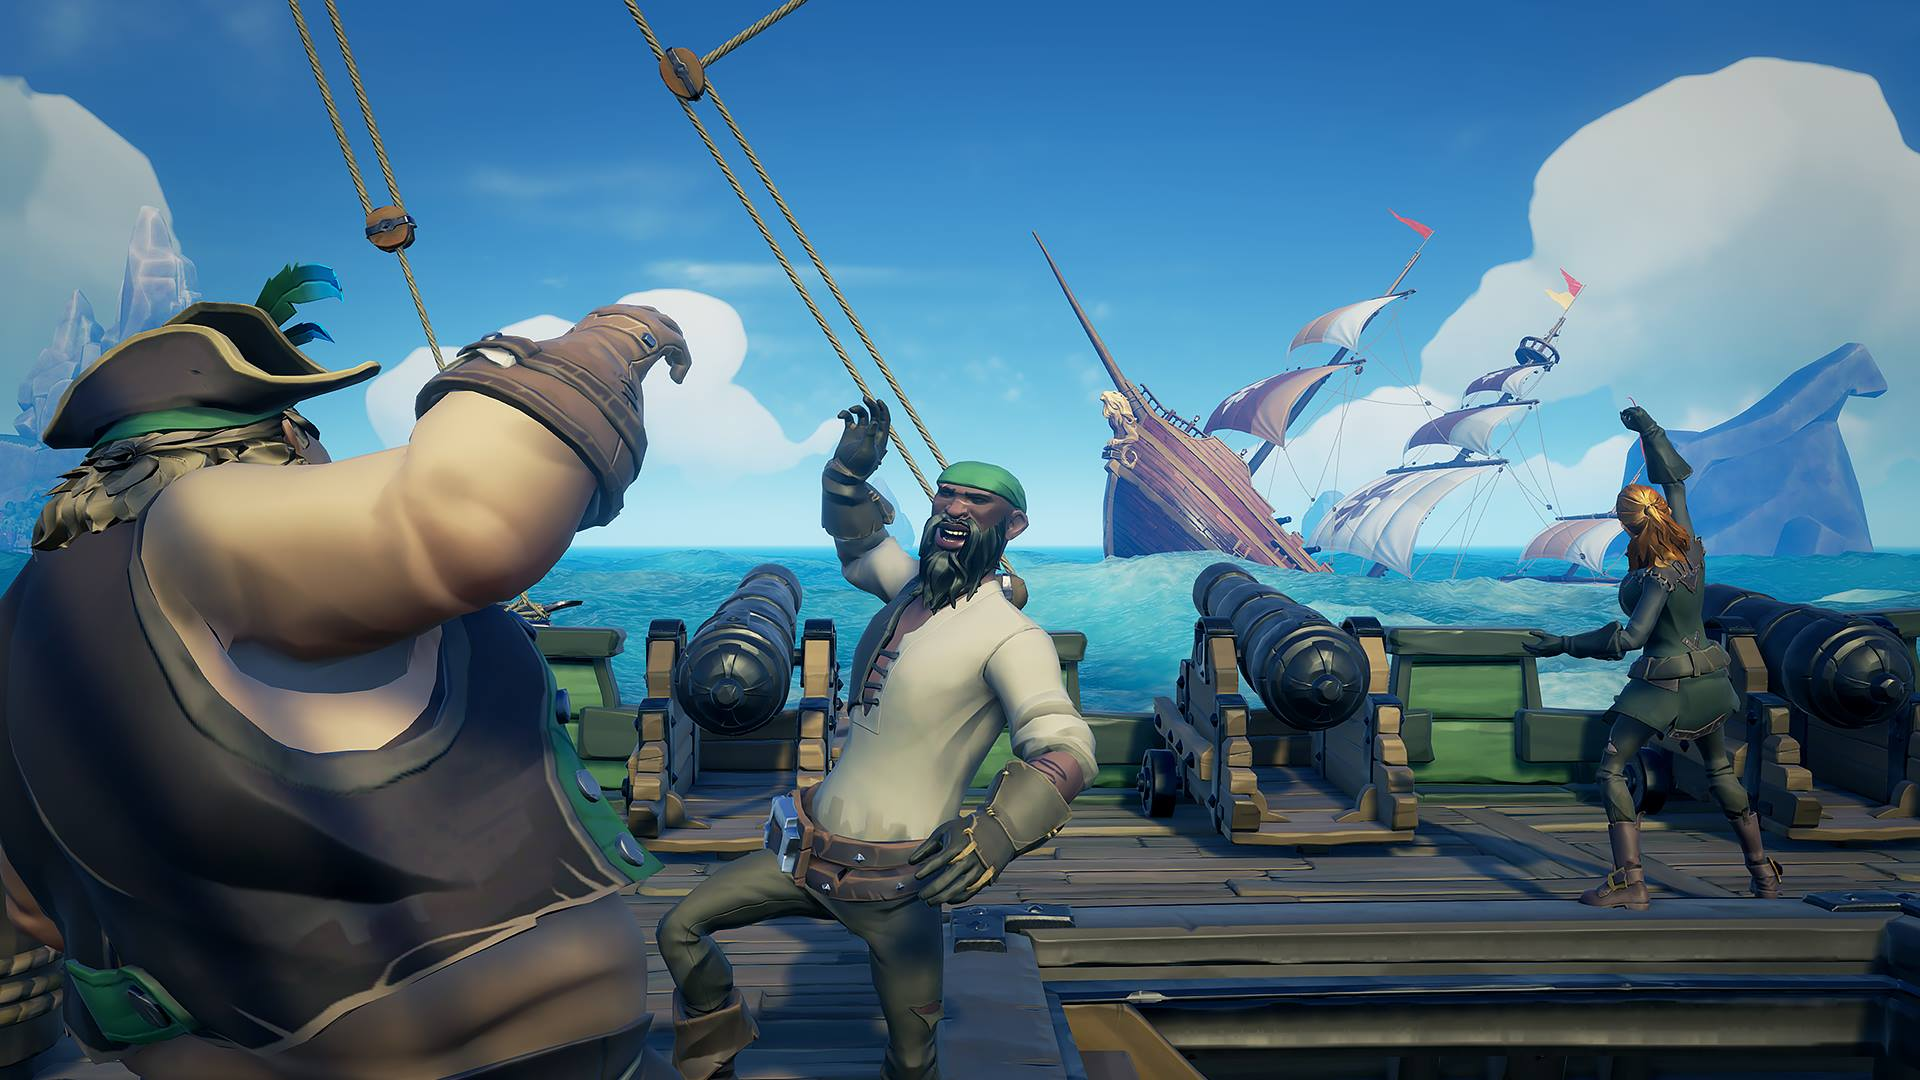 Komt Battle Royale ooit naar Sea of Thieves?